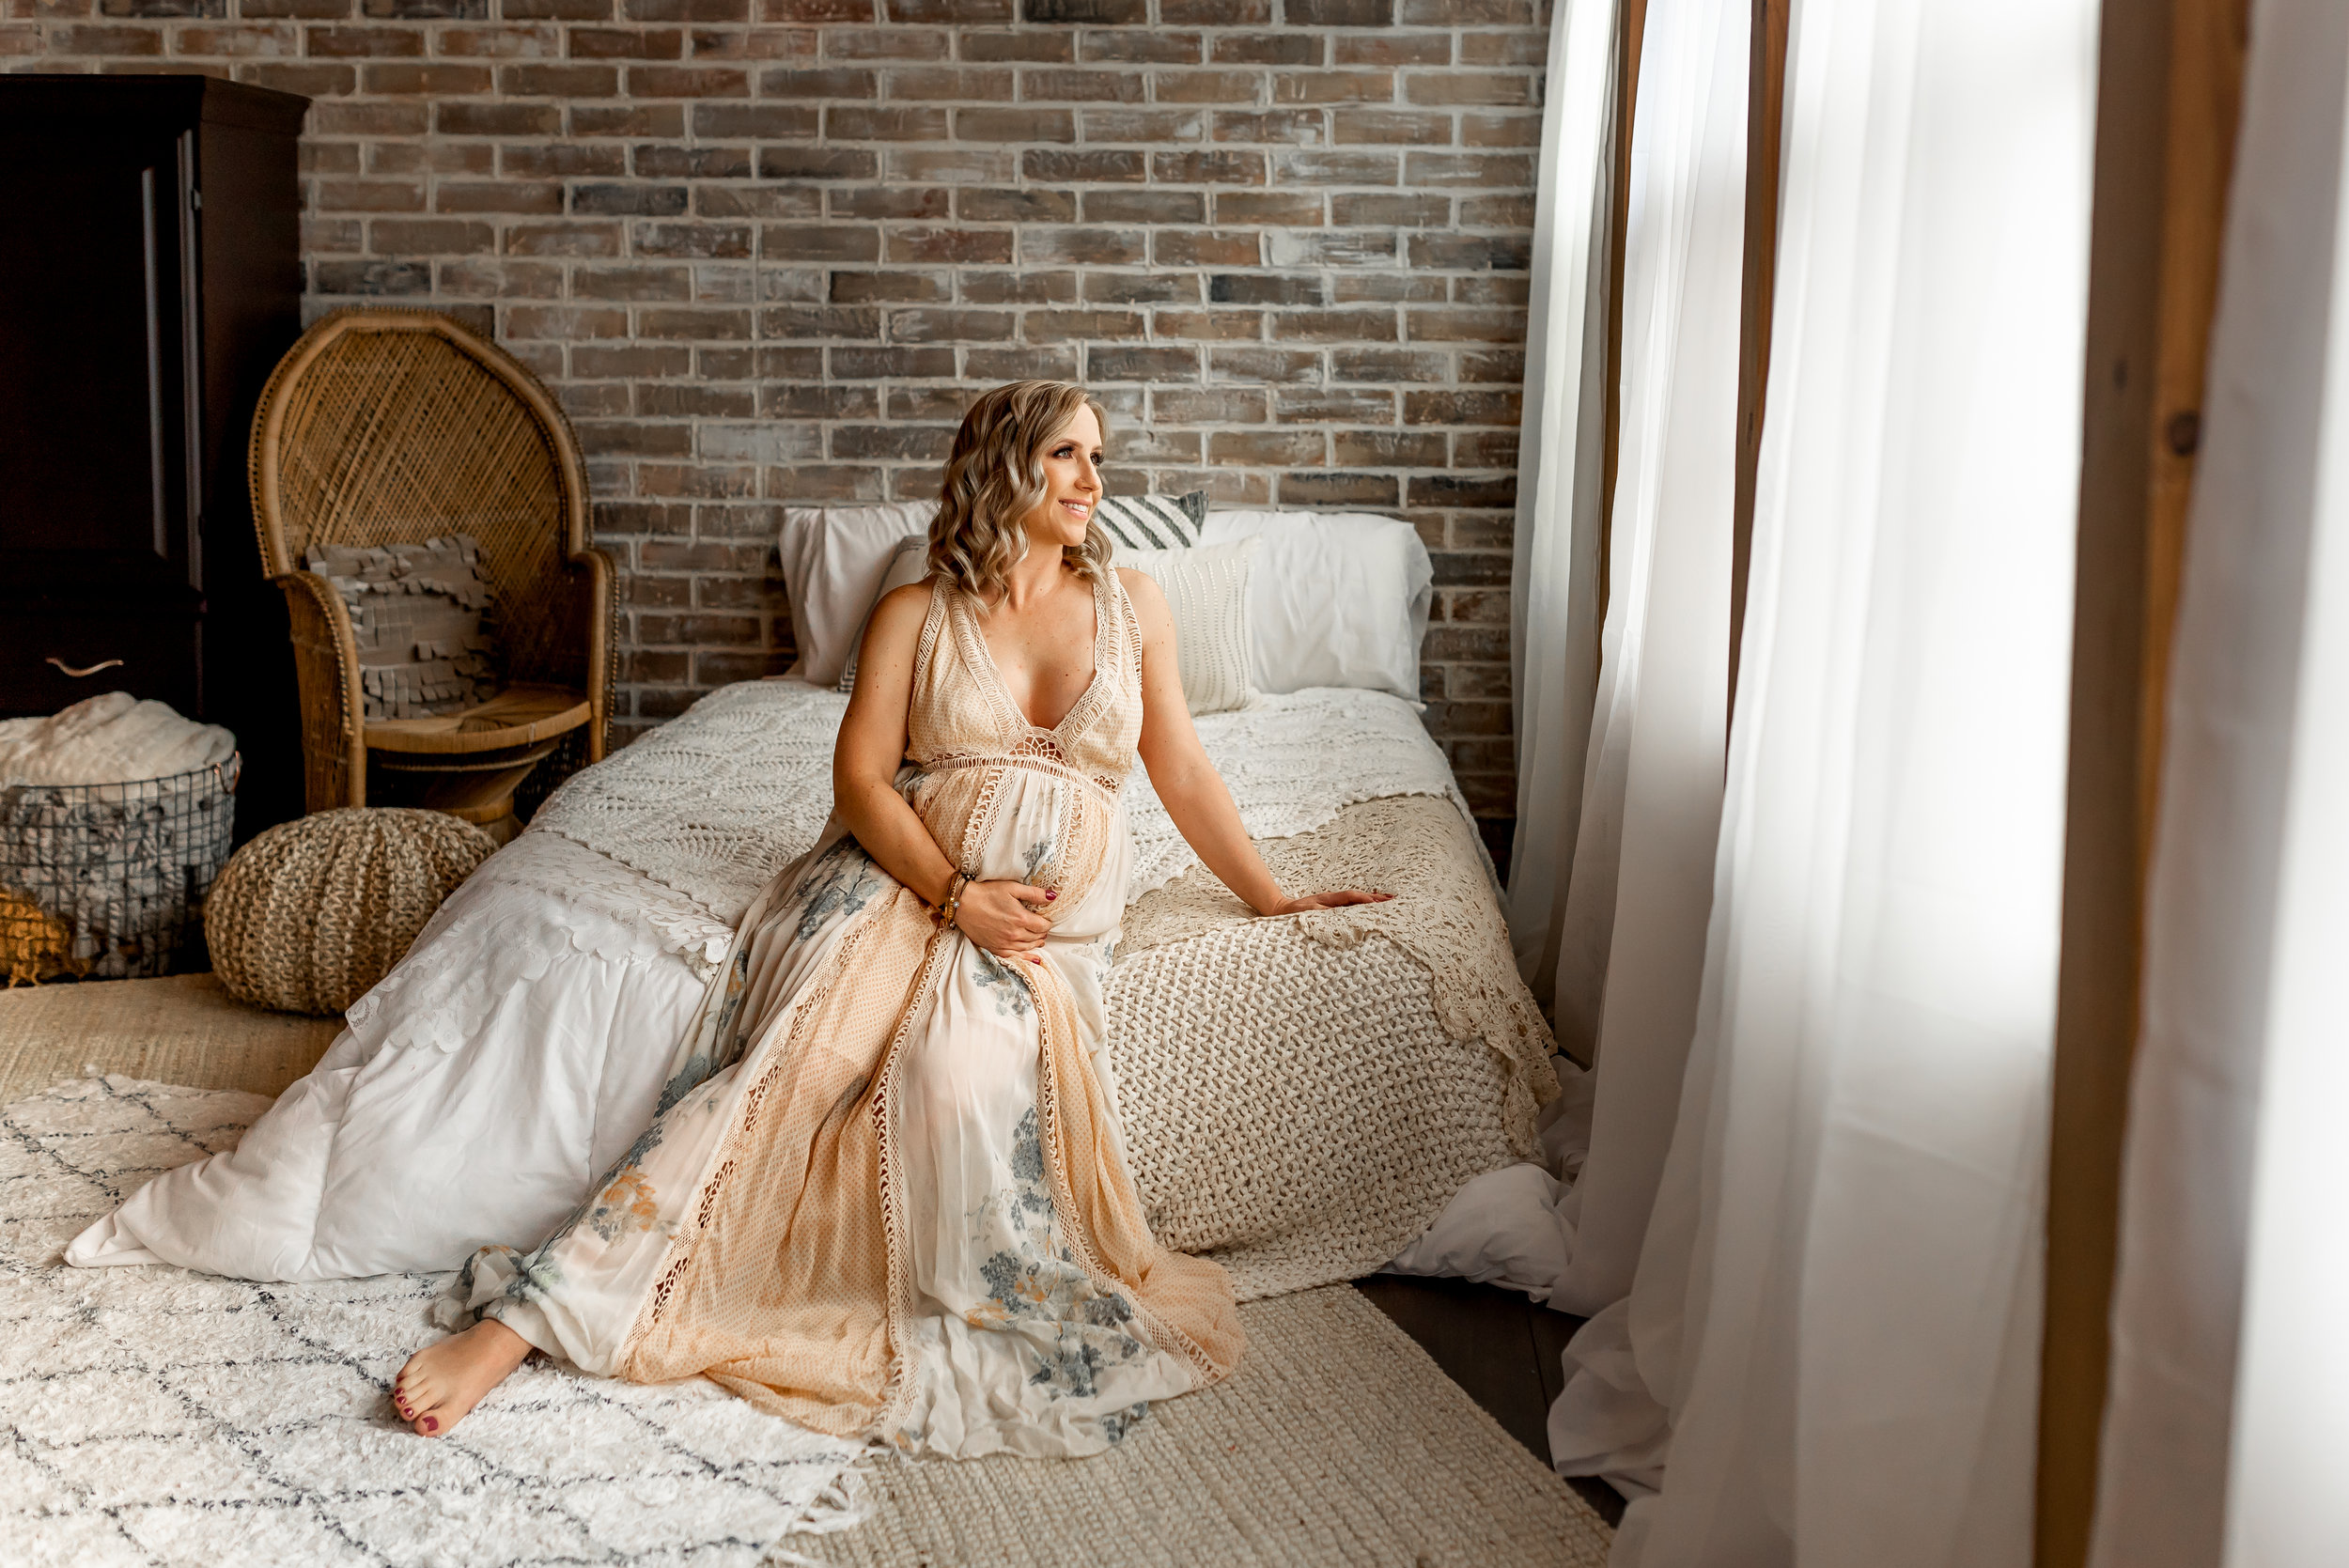 Cypress Maternity Photographer | Old Katy Maternity Session with beautiful light, boho details, and even a little boudoir.